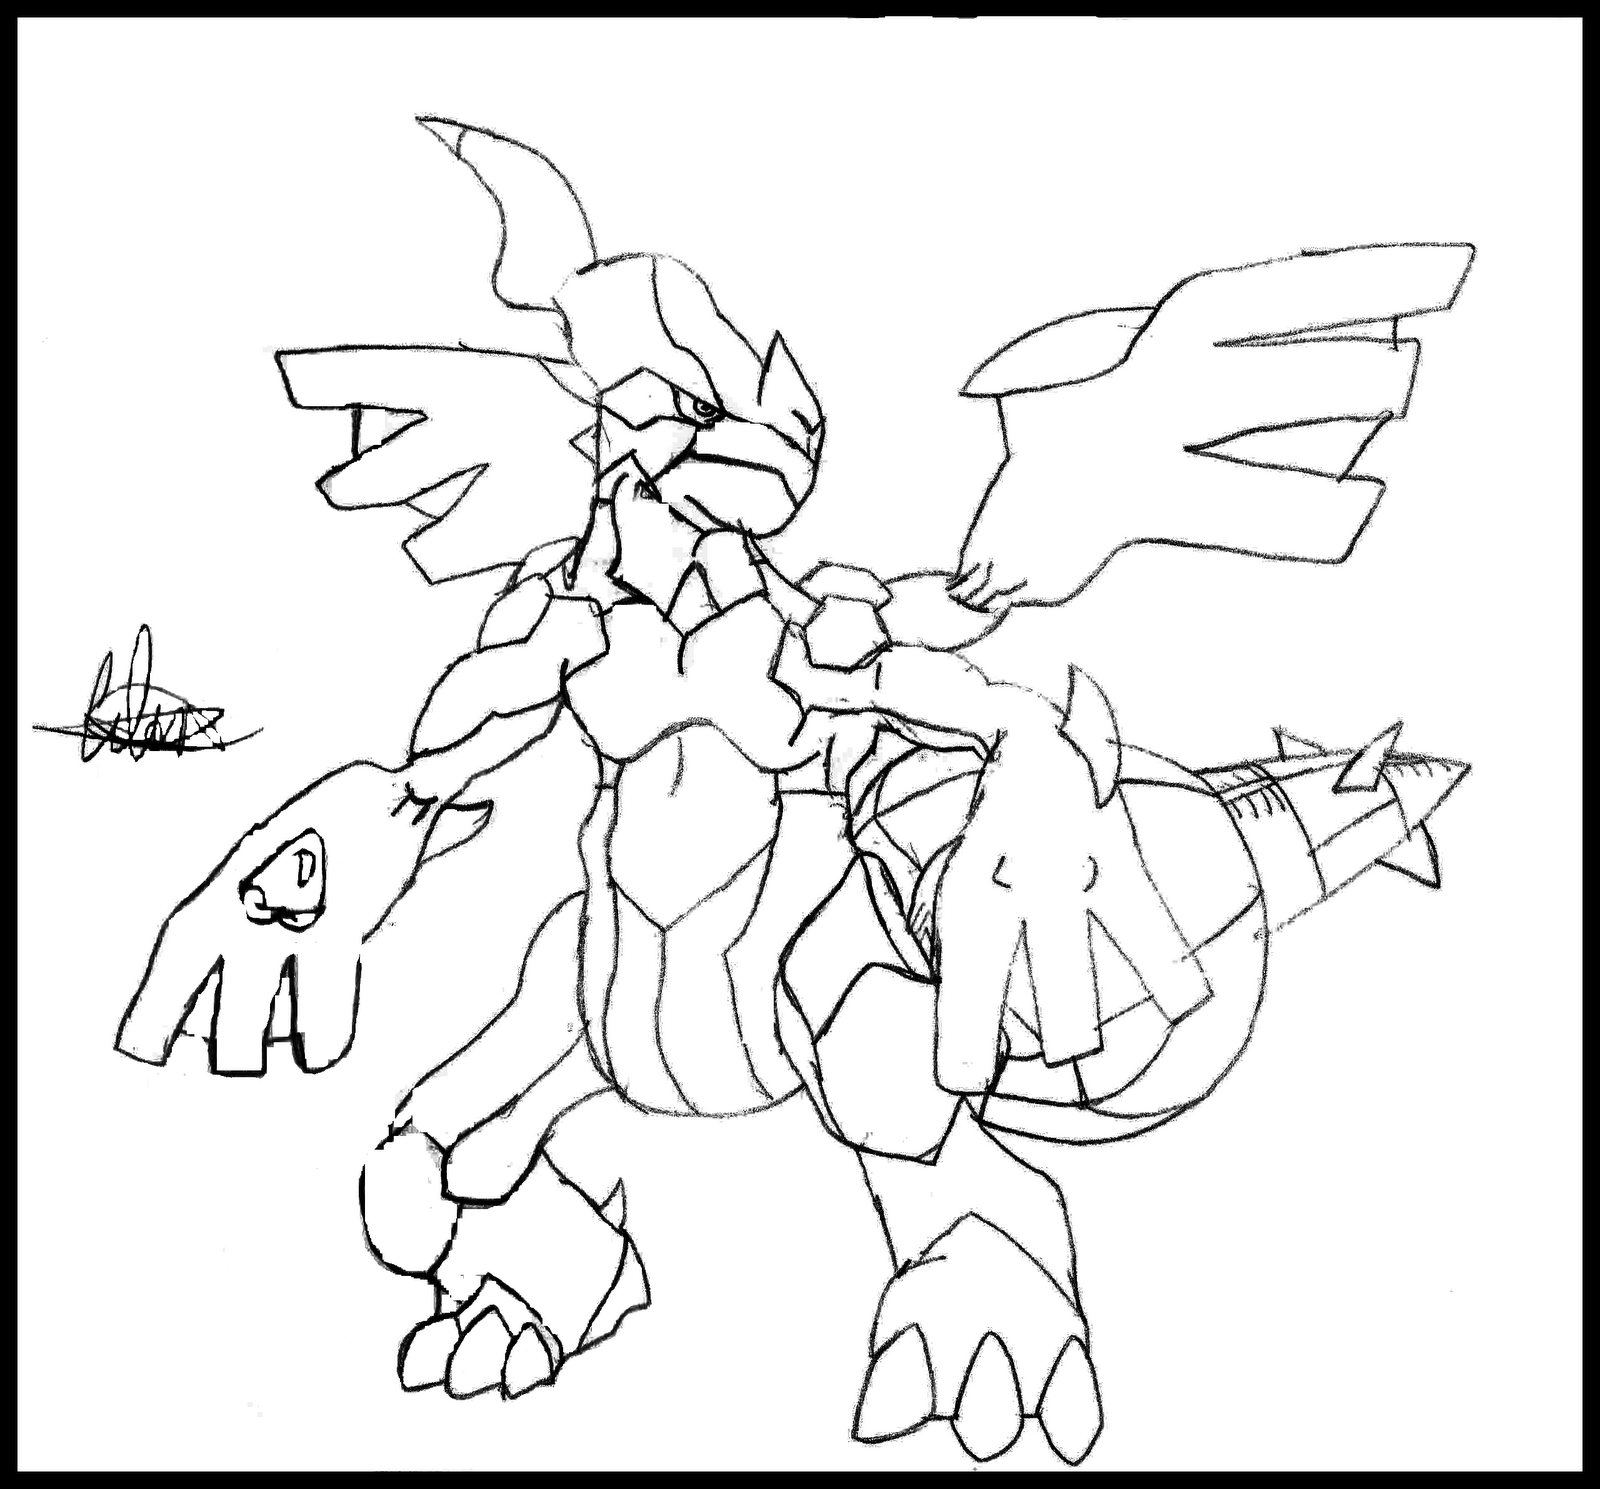 zekrom ex coloring pages | Coloring Pictures Of Zekrom Coloring Pages